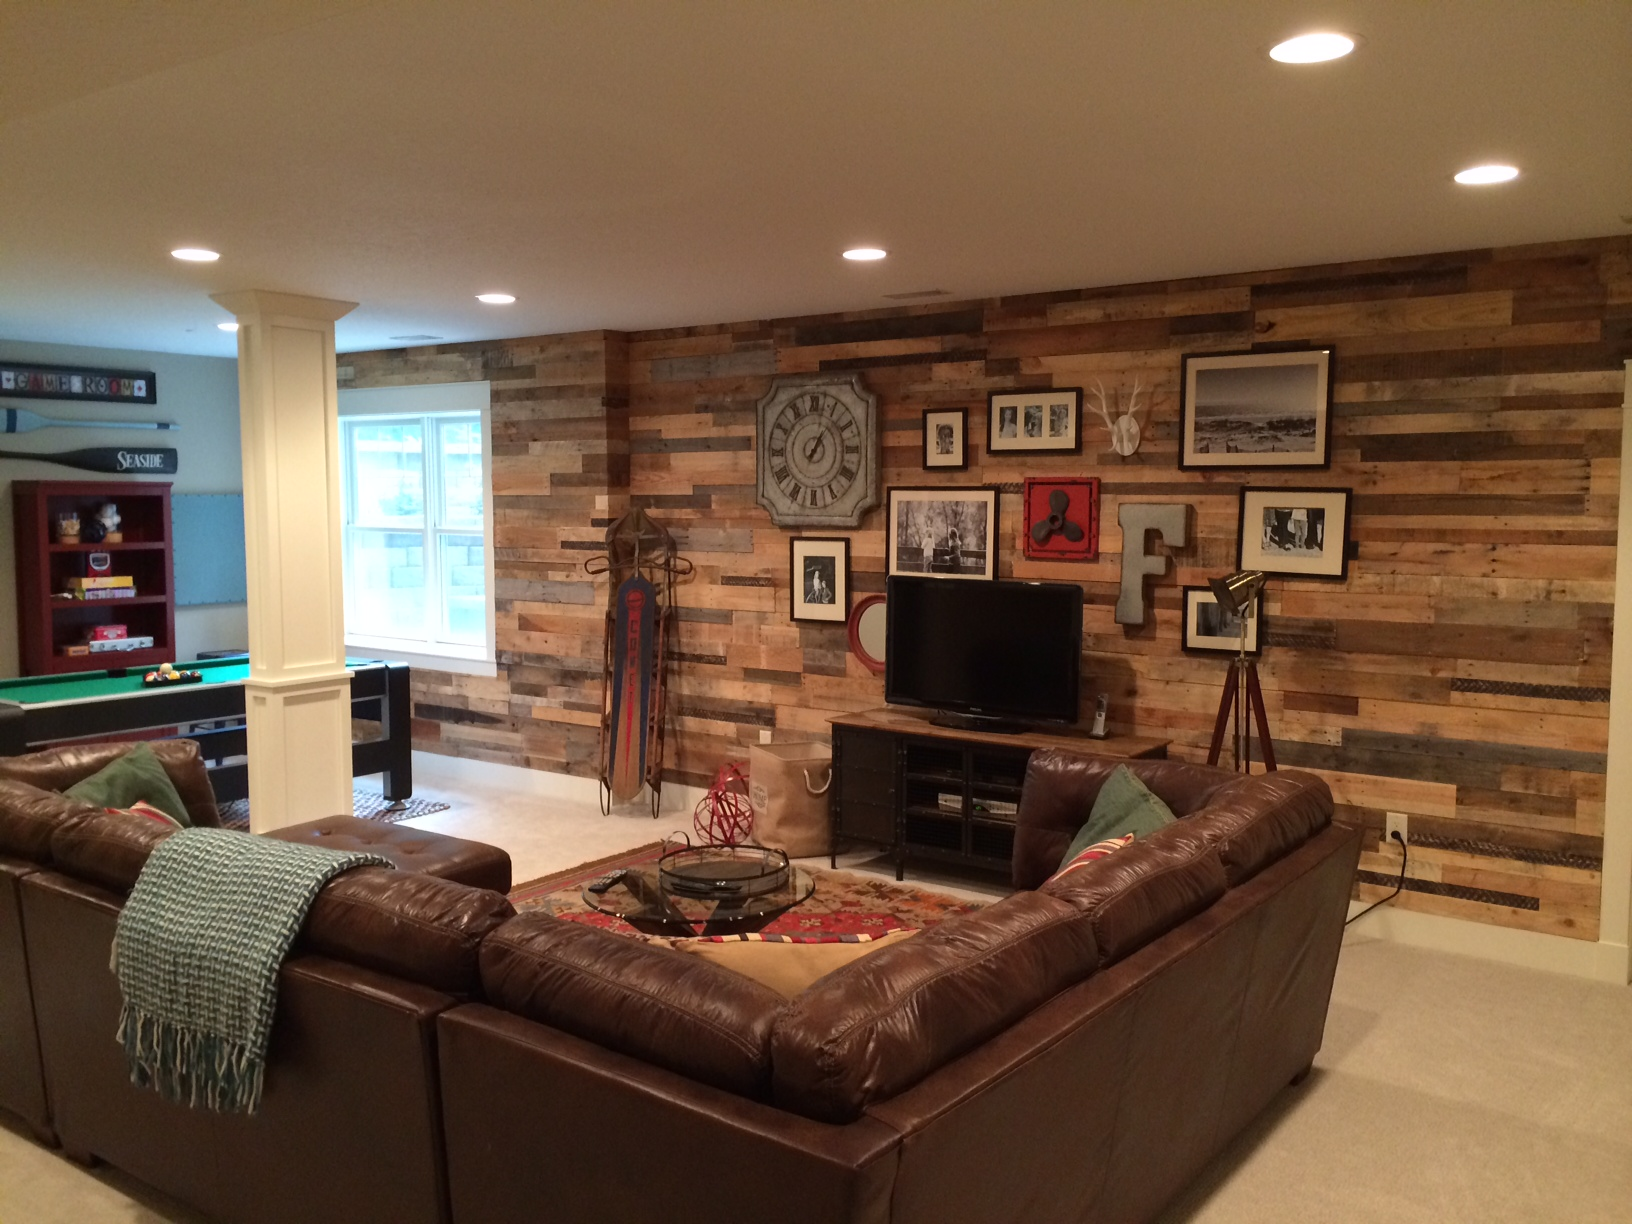 Wood Panel Accent Wall ~ Voted best home decor on houzz in sustainable